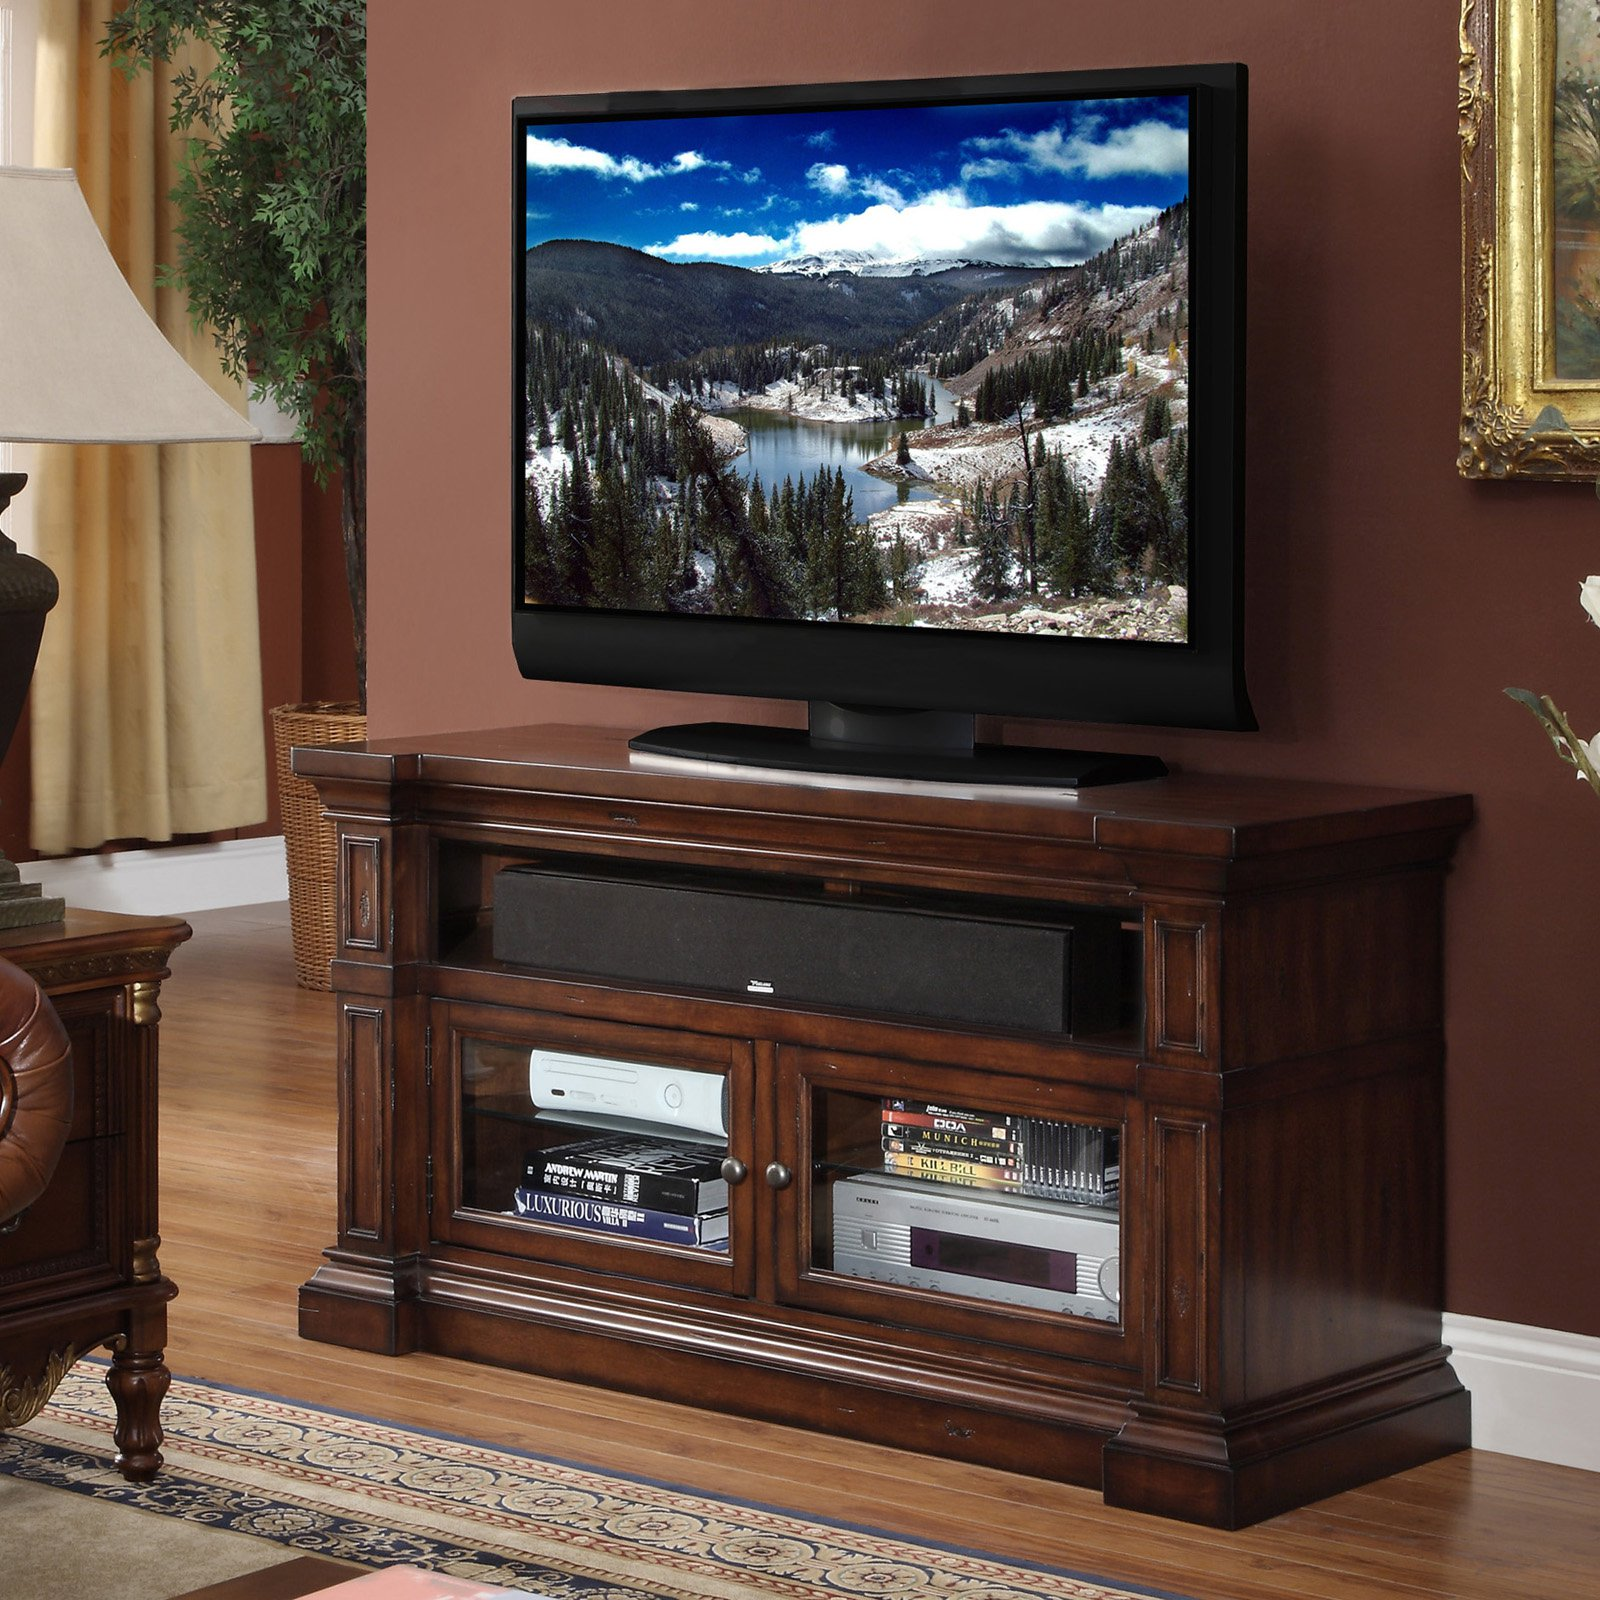 Legends Berkshire 52 in. Media Console - Old World Umber